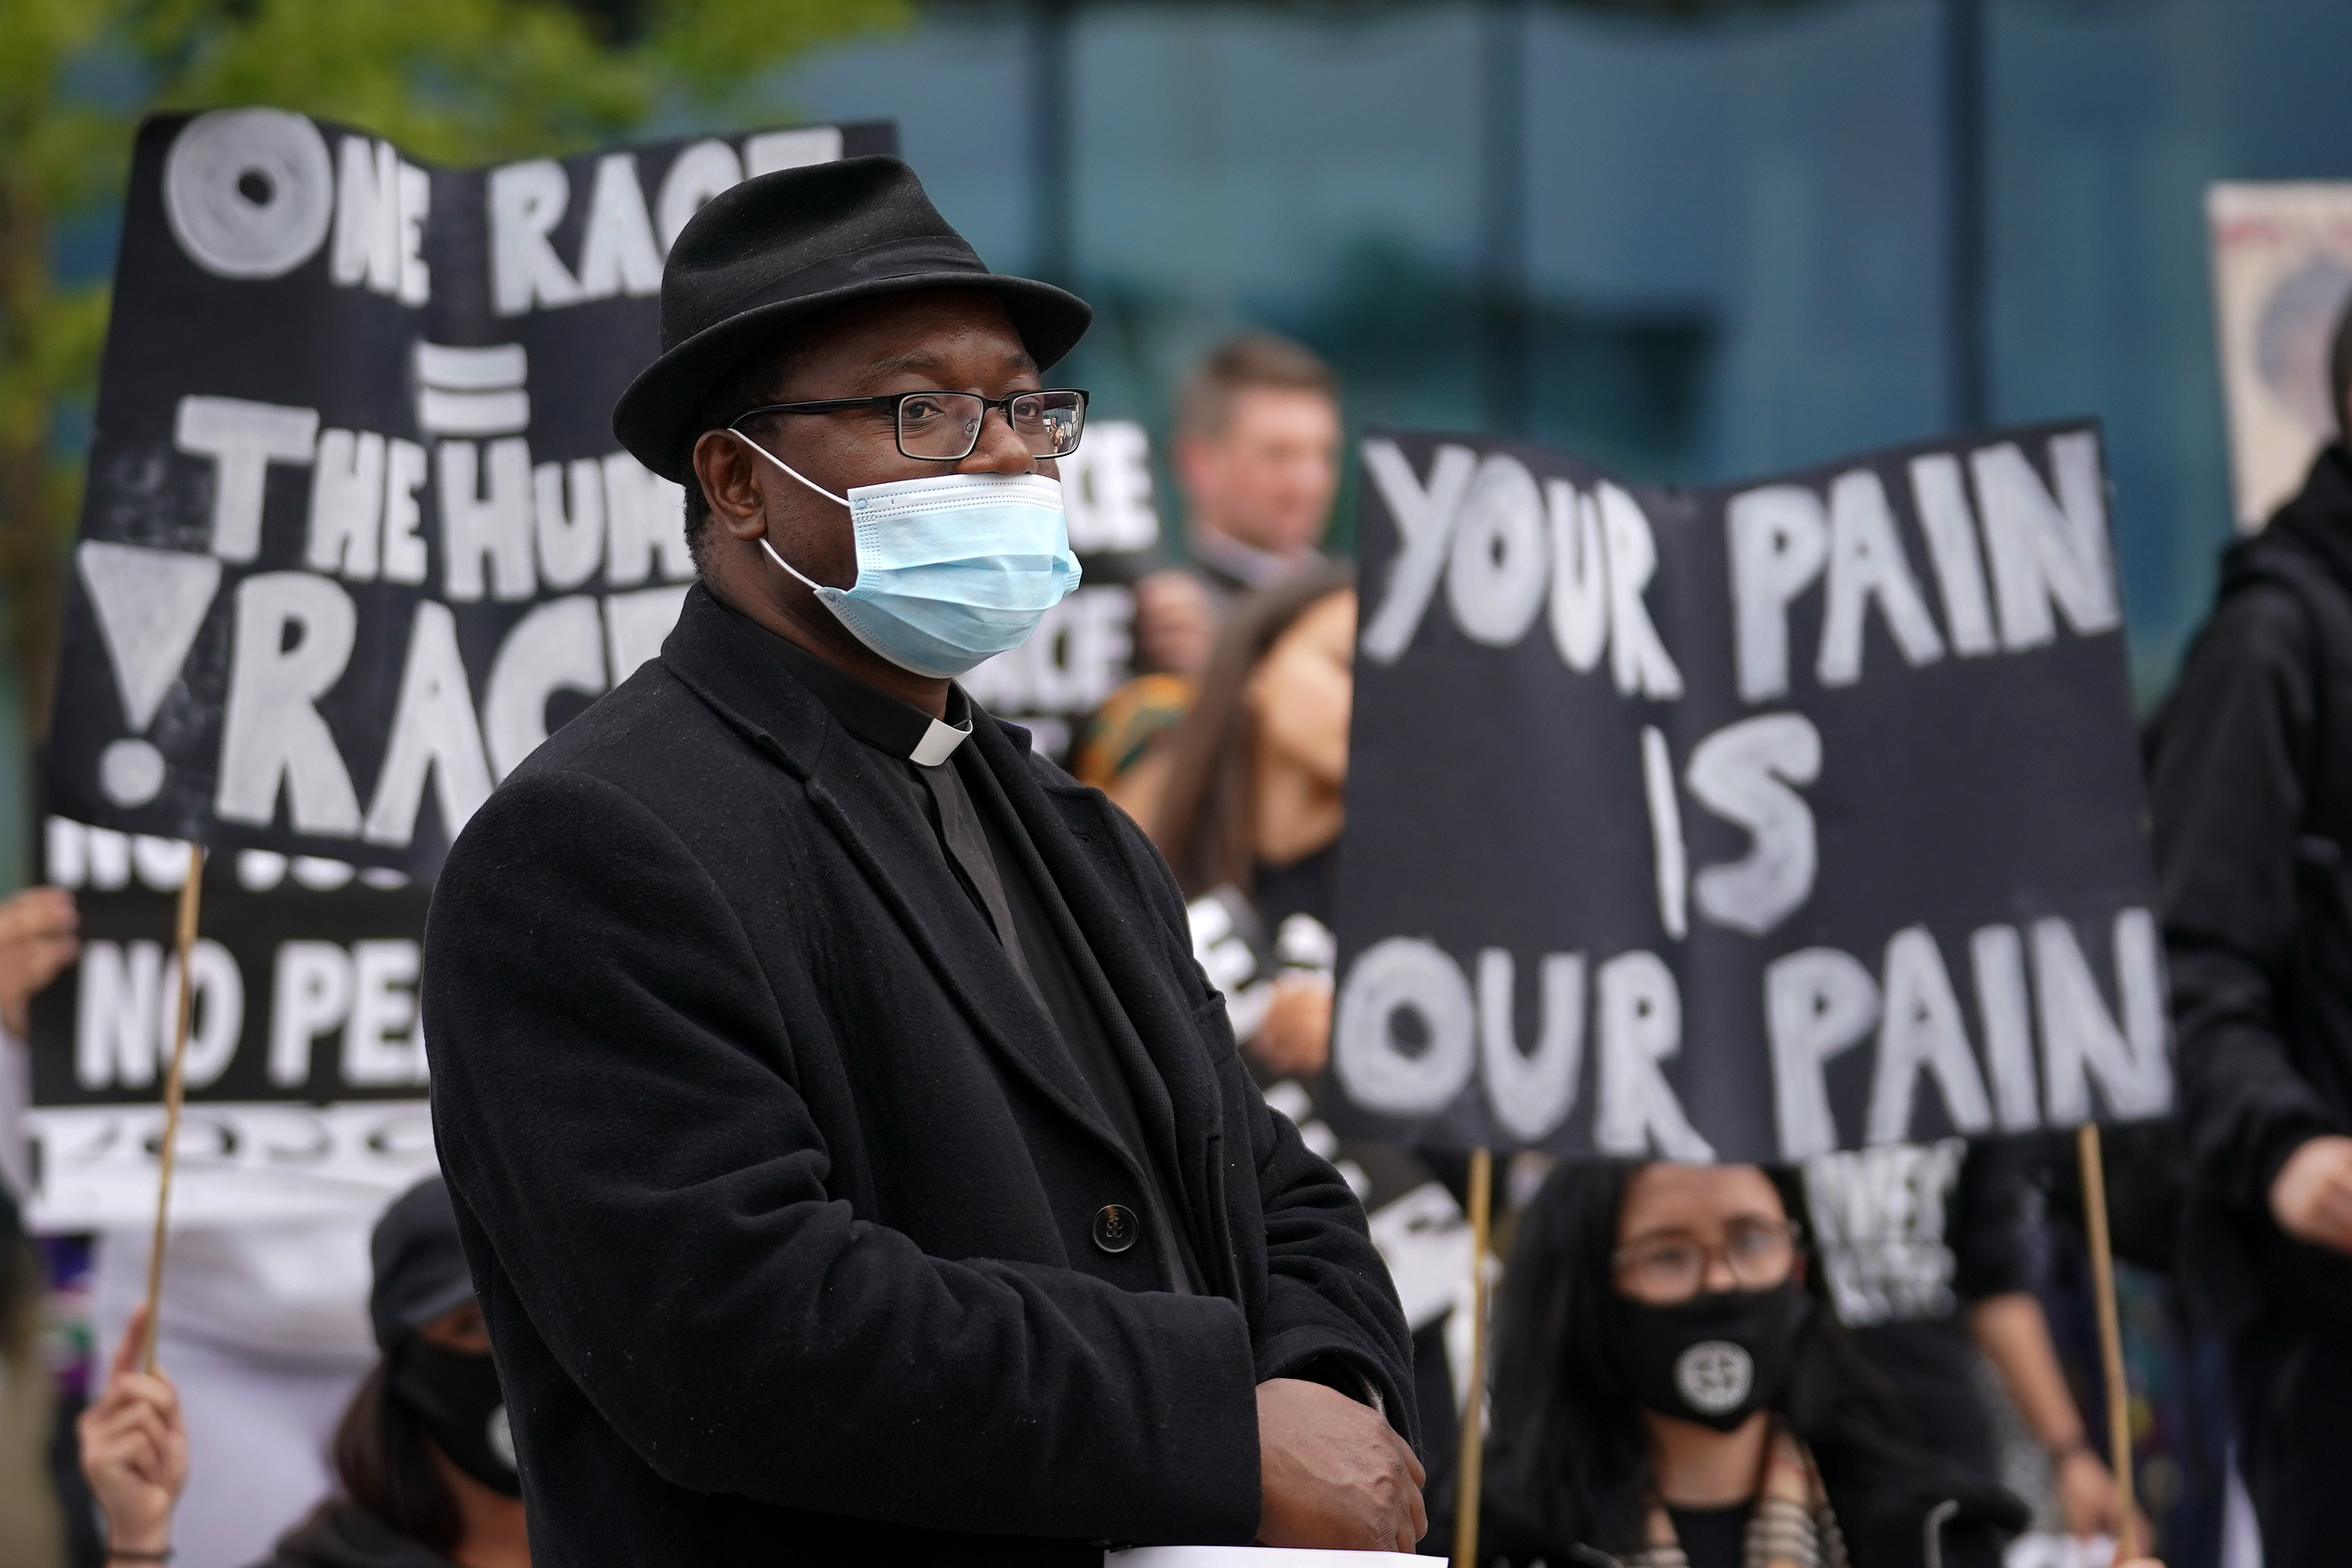 BIRMINGHAM, ENGLAND - JUNE 04: A man of the church takes part in  a Black Lives Matter demonstration on June 4, 2020 in Birmingham, United Kingdom. The death of an African-American man, George Floyd, while in the custody of Minneapolis police has sparked protests across the United States, as well as demonstrations of solidarity in many countries around the world. (Photo by Christopher Furlong/Getty Images)